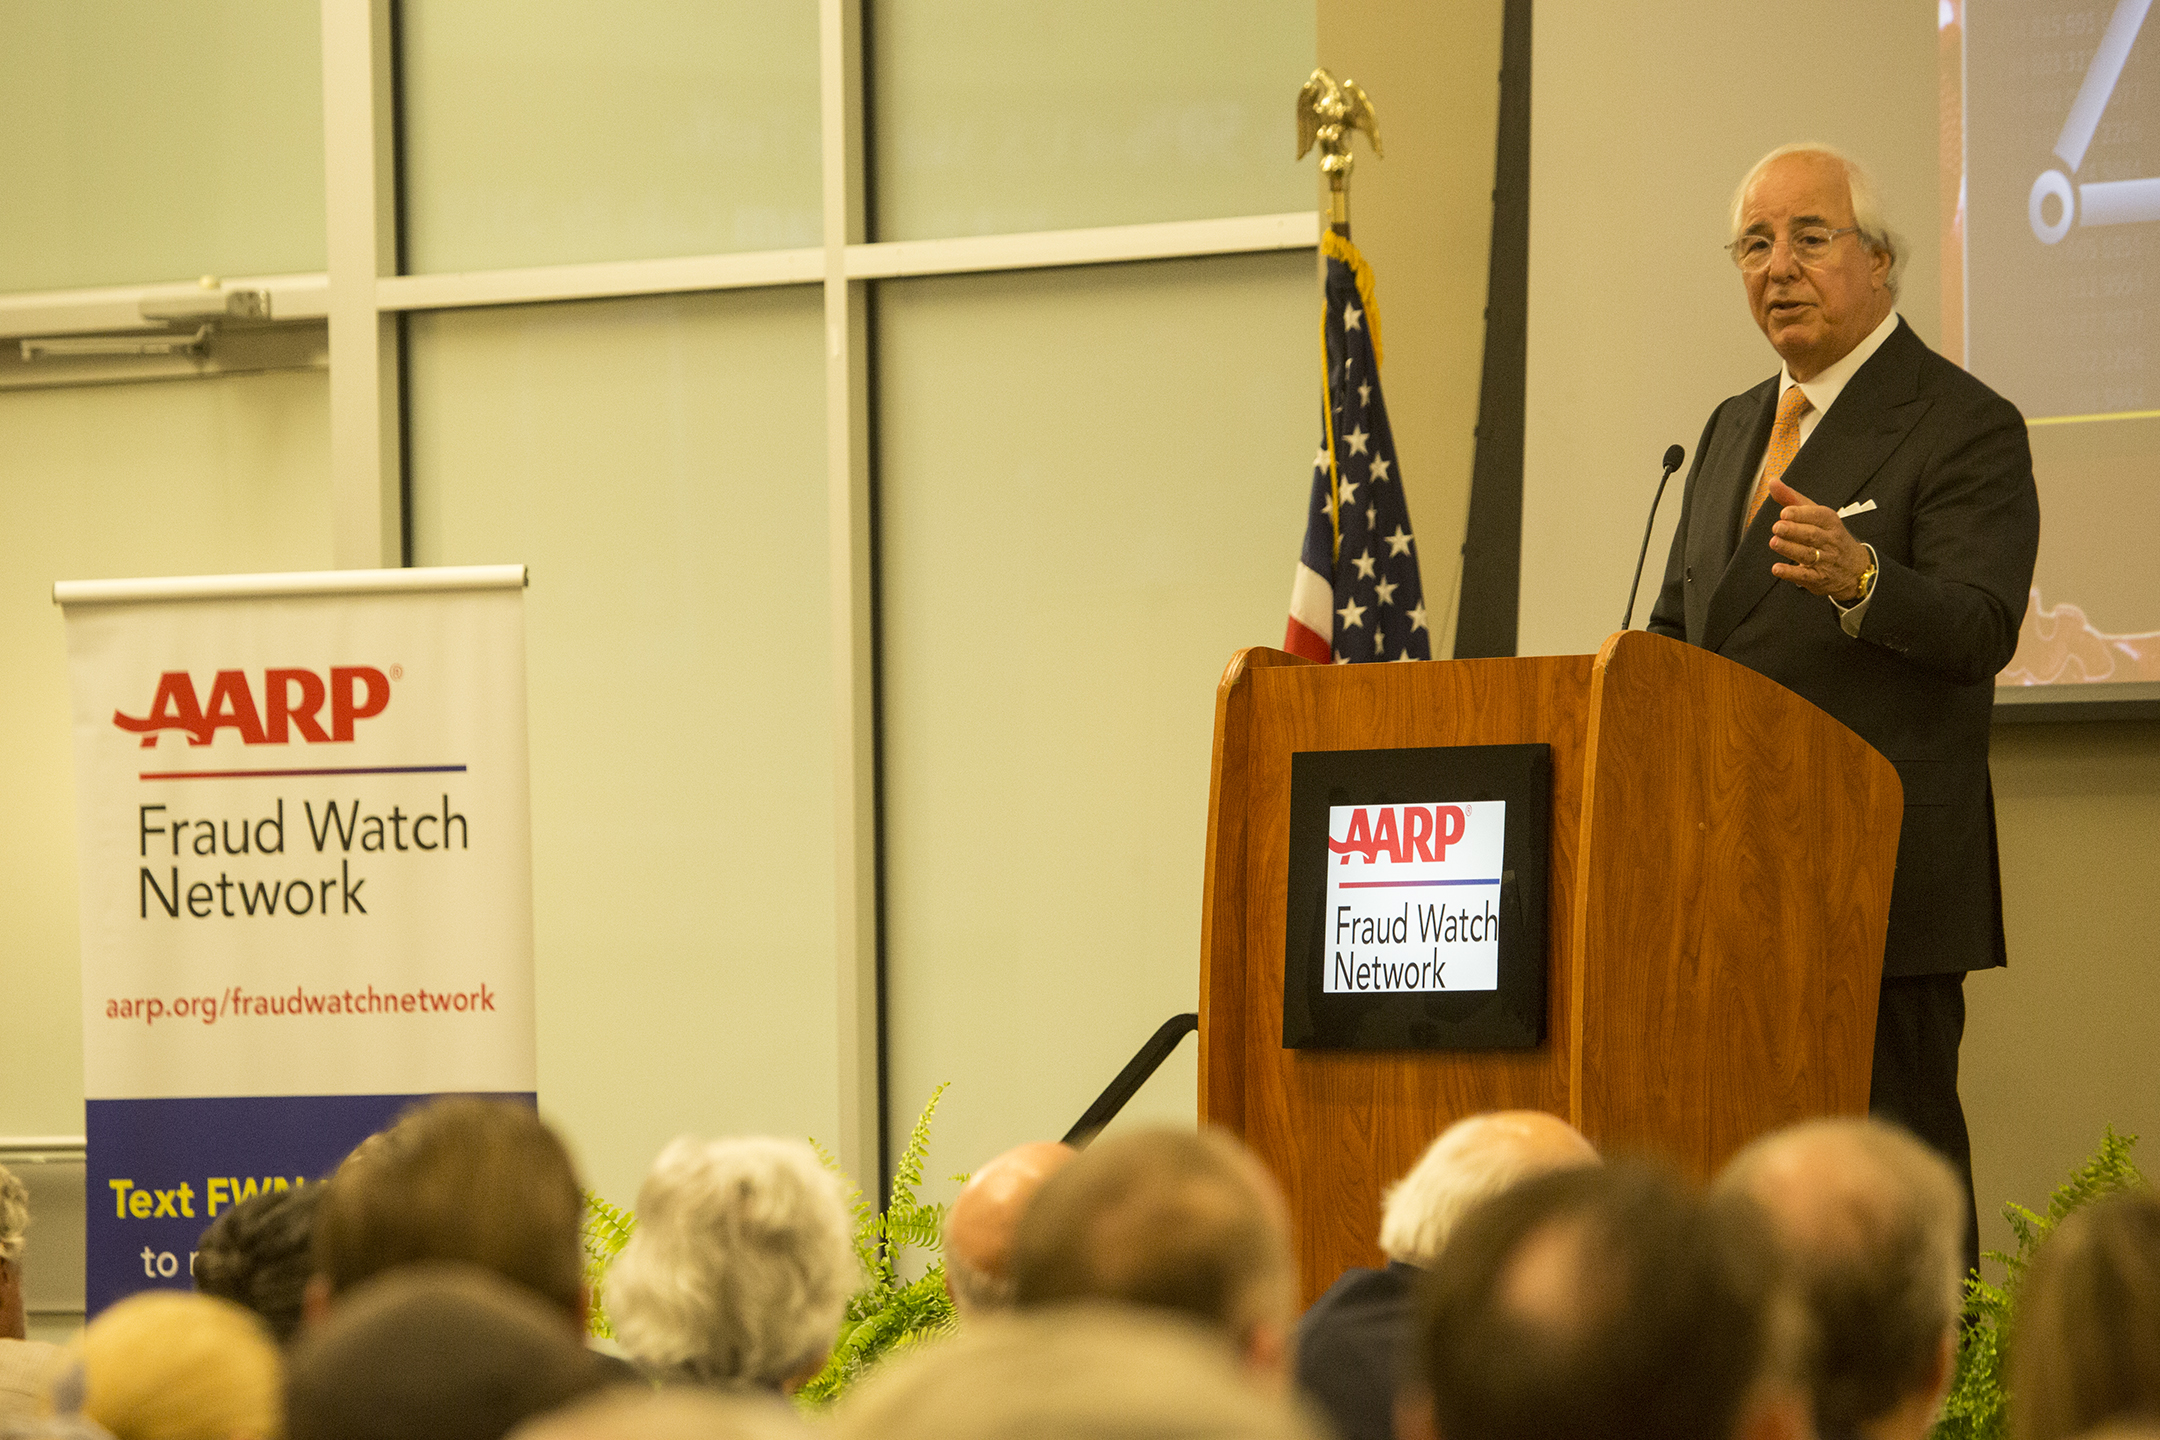 Identity Theft expert, Frank Abagnale, visits Alabama for free presentation on fraud and scams